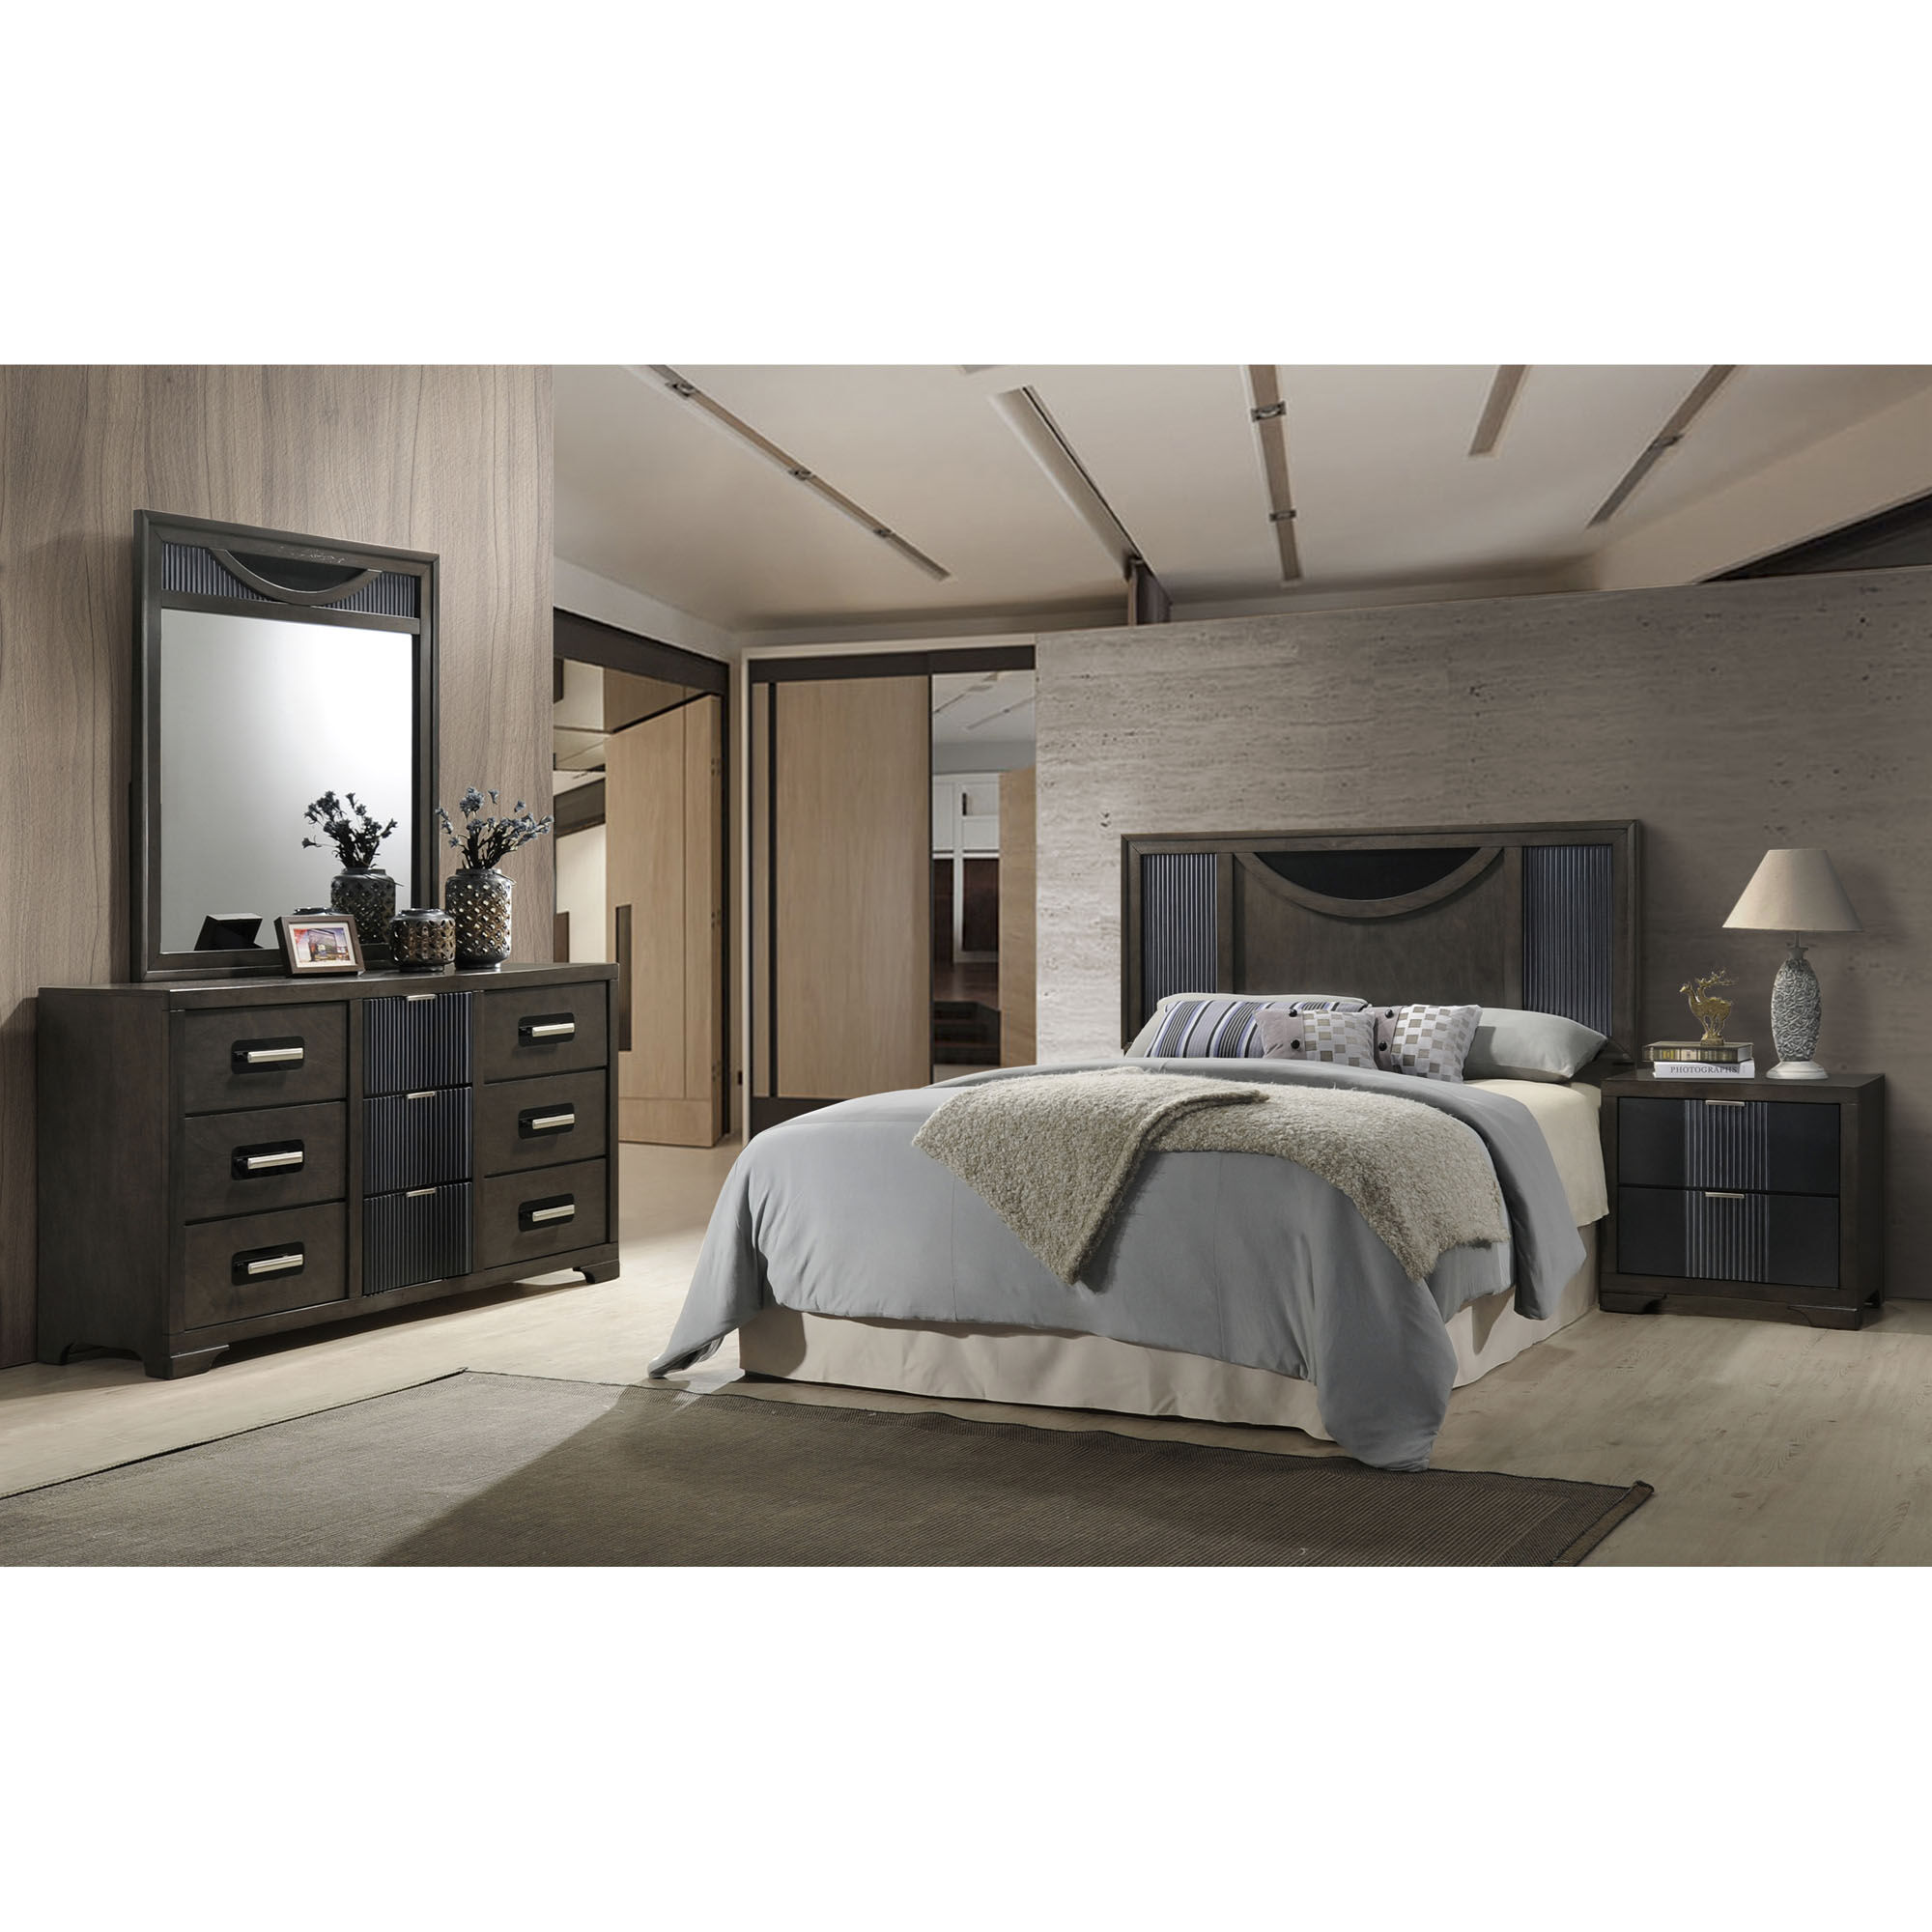 Modest Queen Bedroom Sets On Sale Decorating Ideas